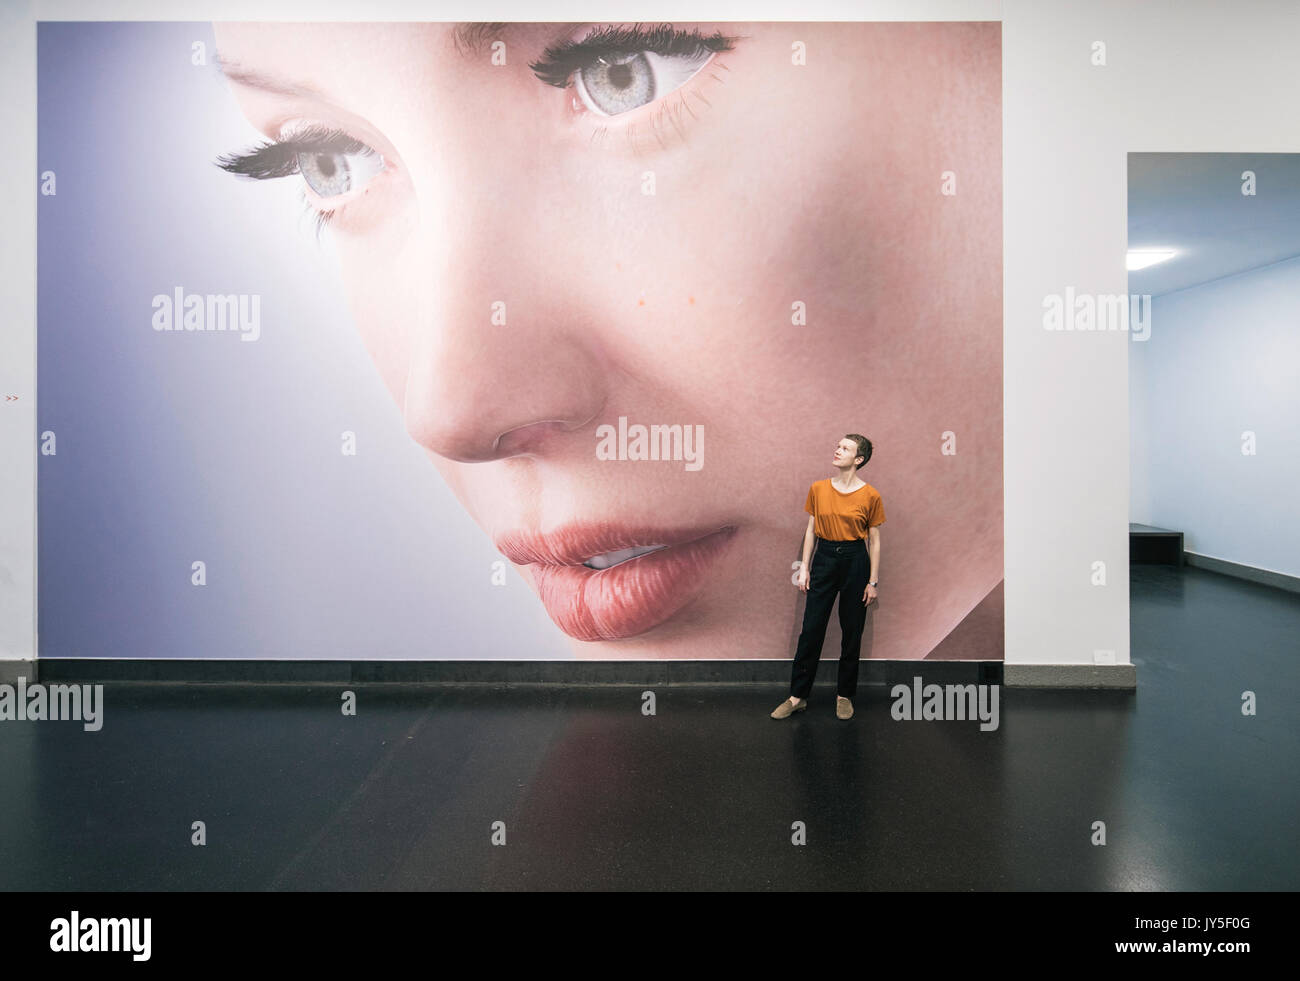 Dresden, Germany. 17th Aug, 2017. Curator Kathrin Meyer standing in front of the picture 'Rigged' (2014) by Kate Cooper at the entrance of the new exhibition 'The face. A search for clues' ('Das Gesicht. Eine Spurensuche') in the German Hygiene Museum in Dresden, Germany, 17 August 2017. The exhibition takes place between 19 August 2017 and 25 February 2018. Photo: Oliver Killig/dpa-Zentralbild/dpa/Alamy Live News - Stock Image